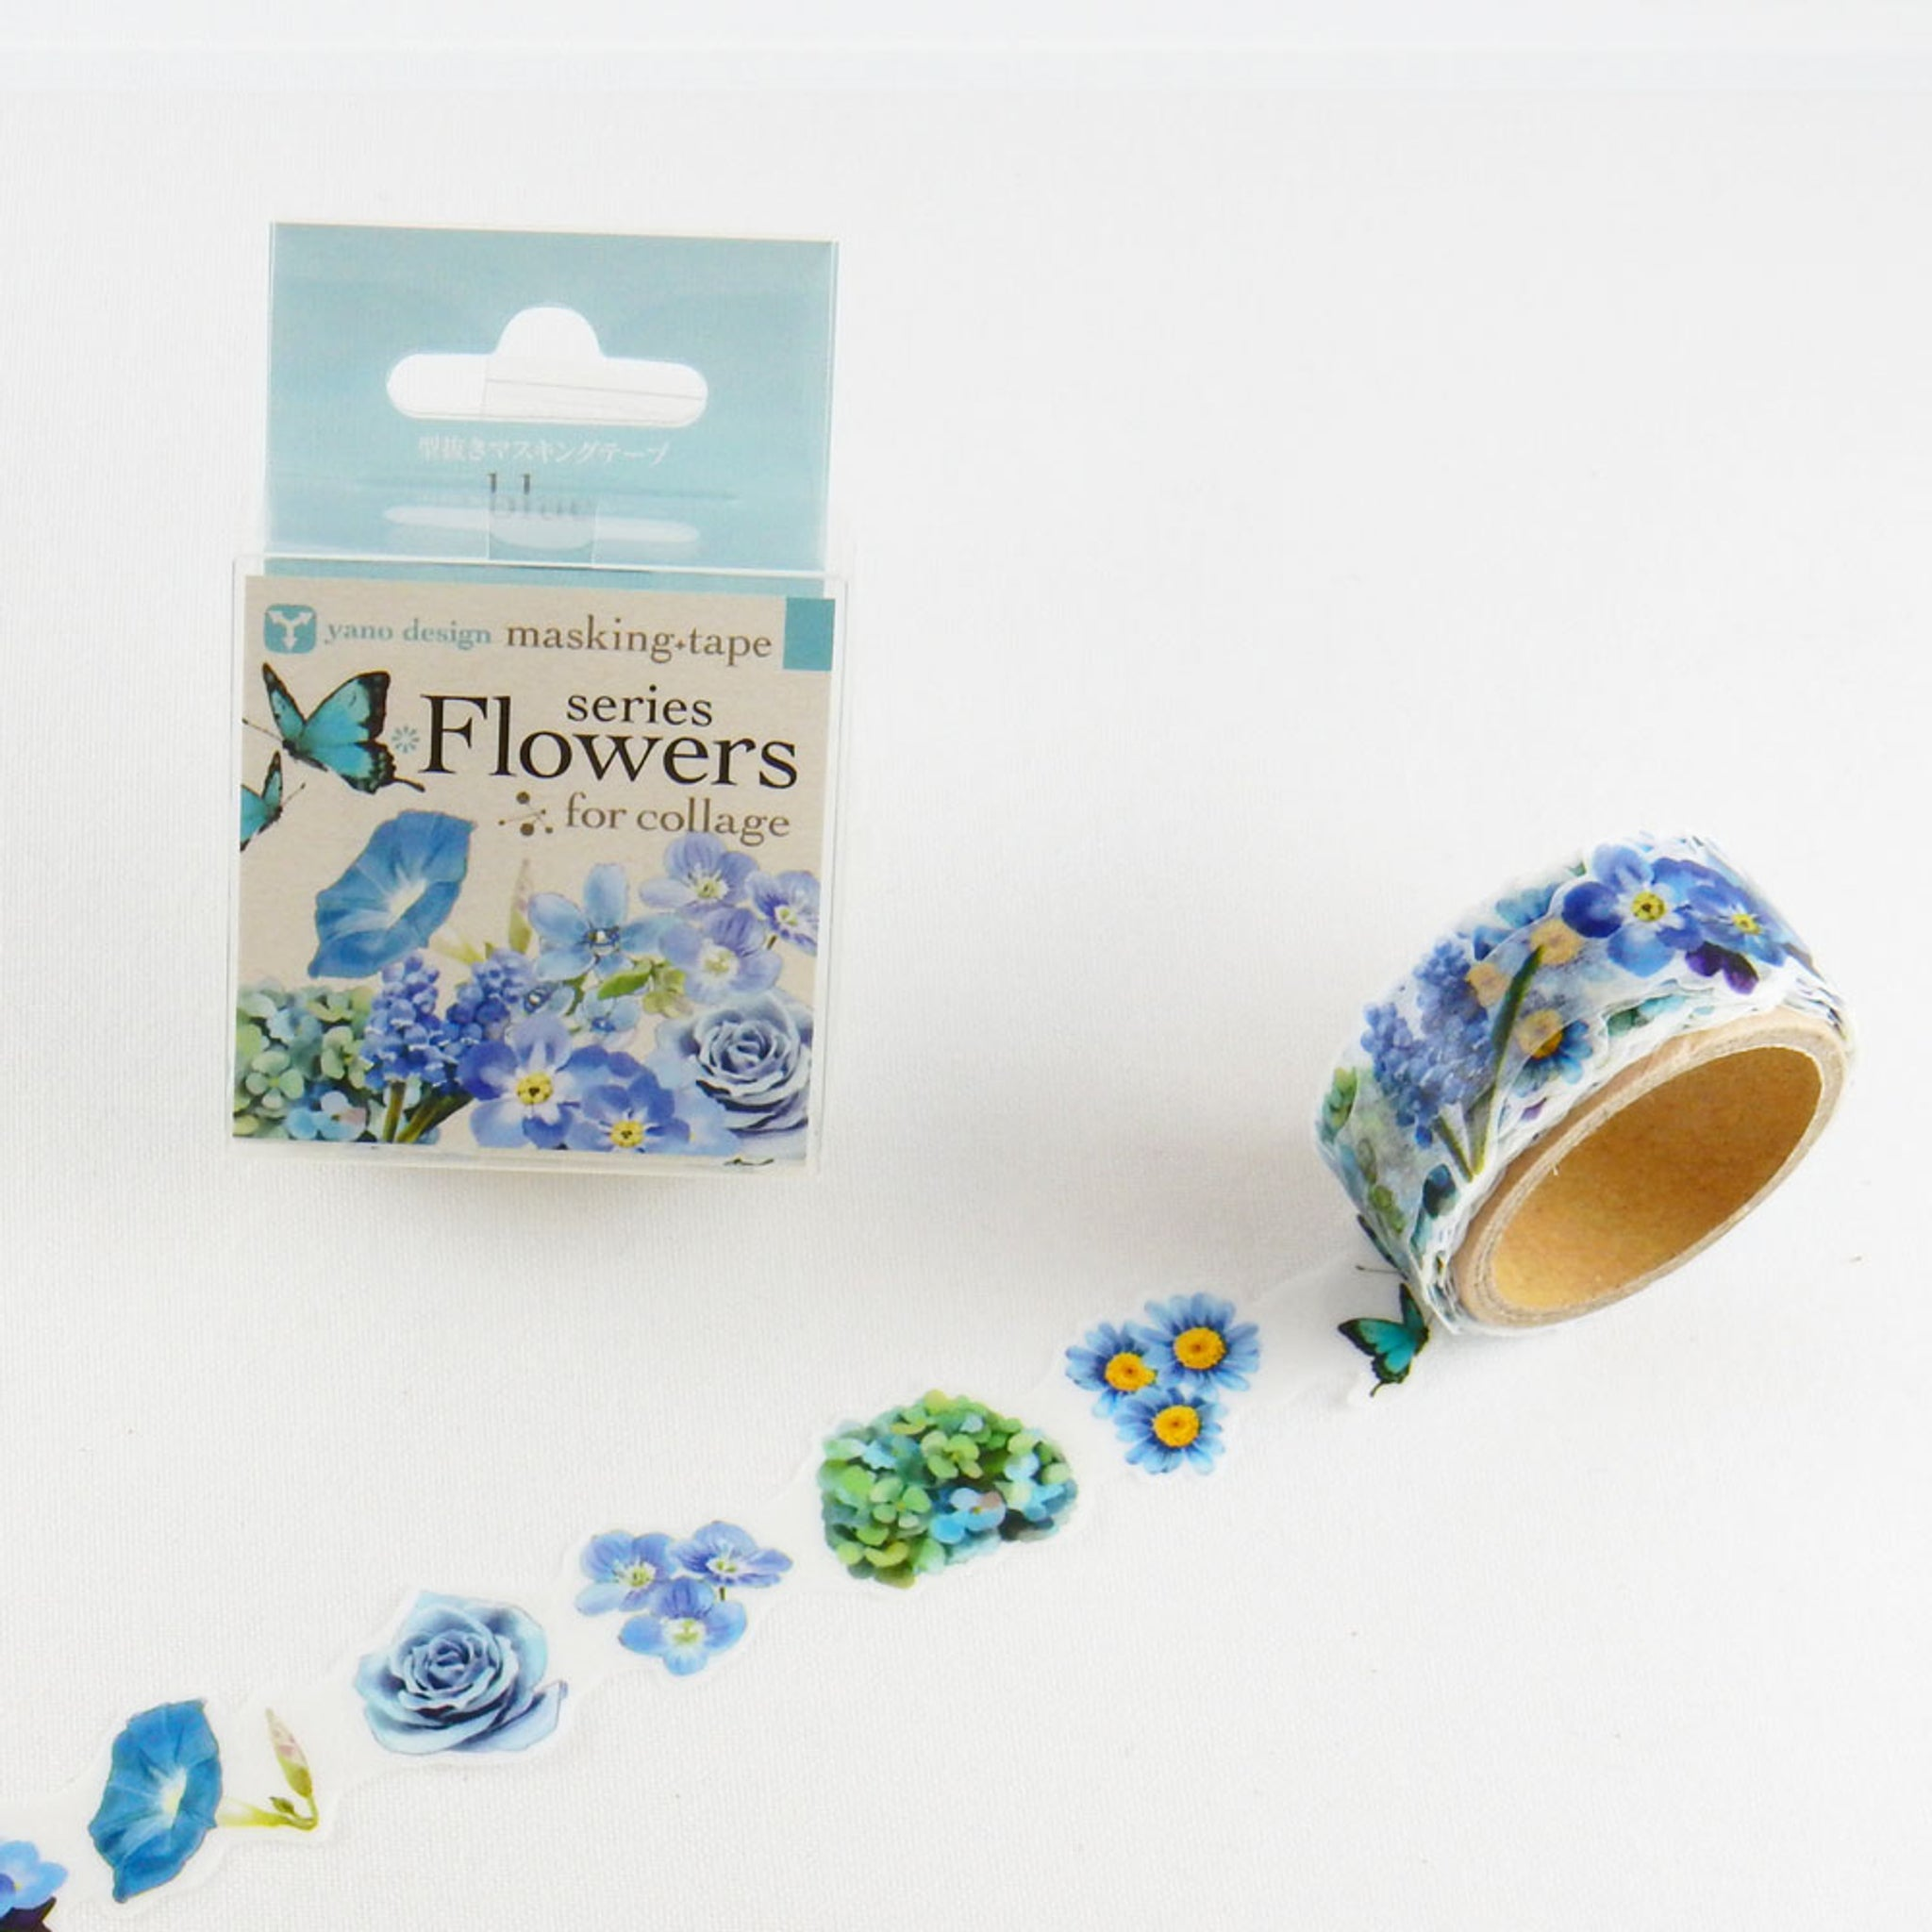 Round Top x Yano Design Flower collage, blue  washi tape